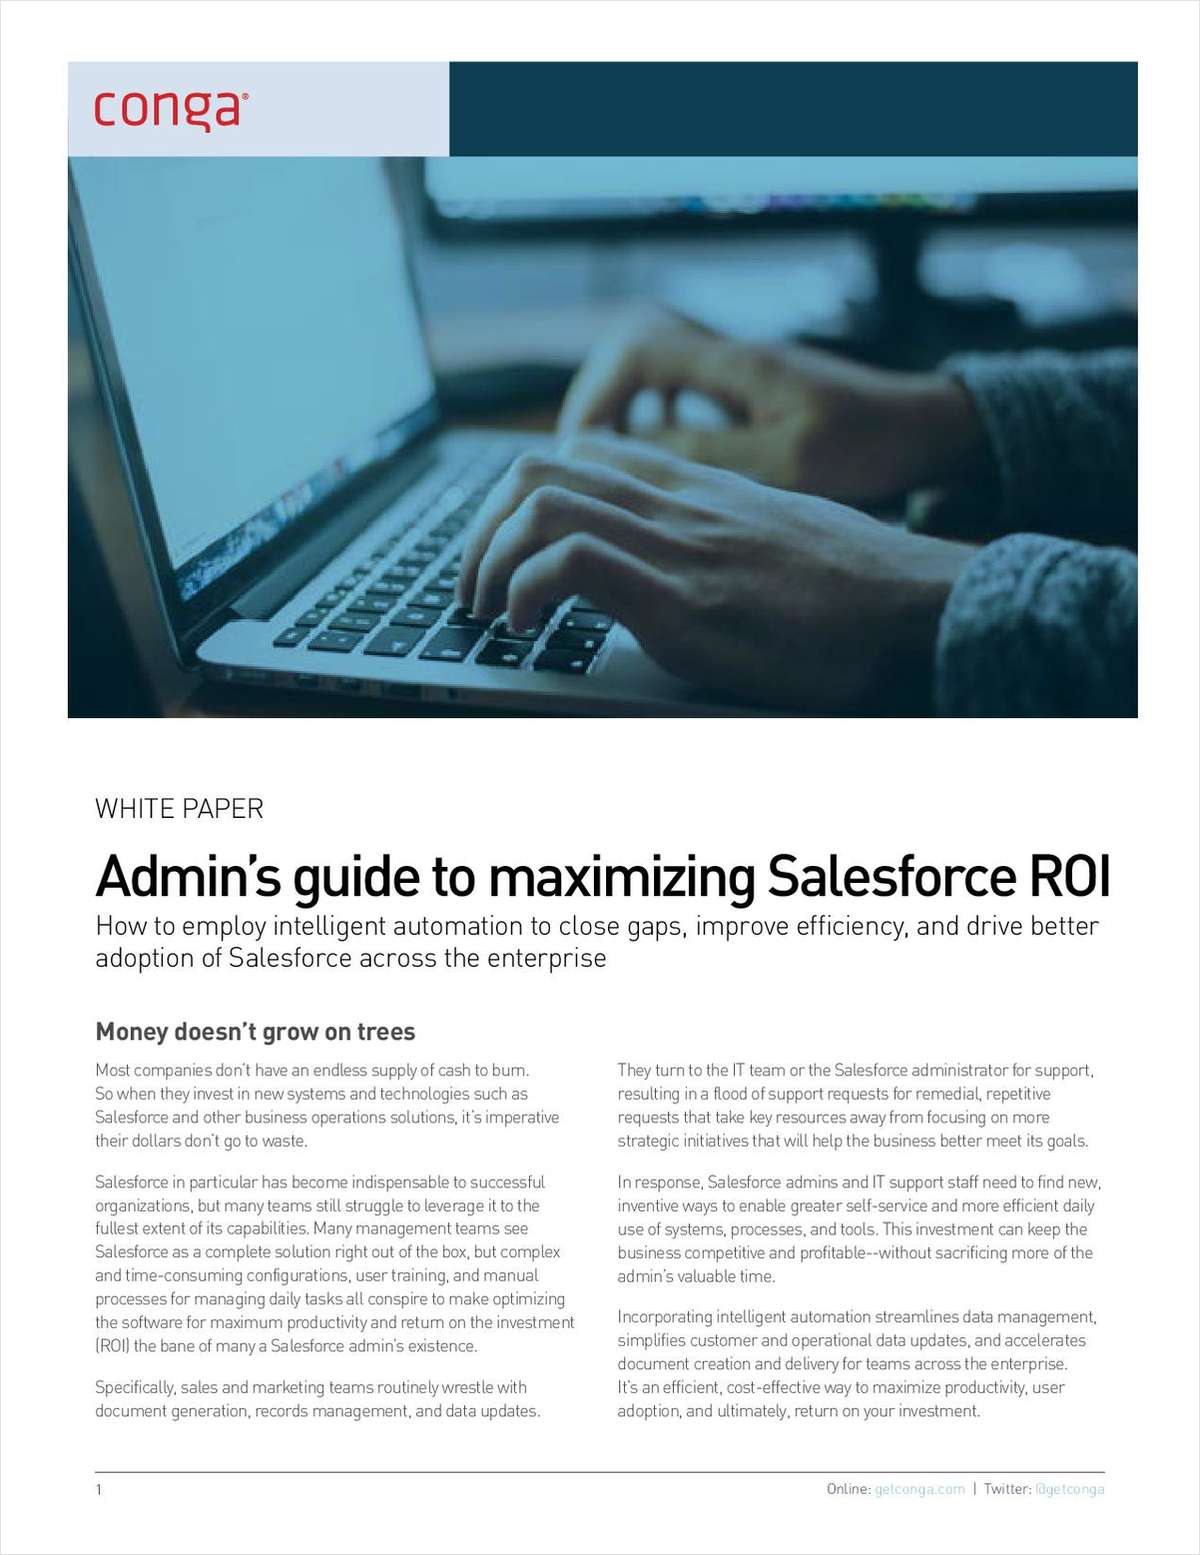 The Admin's Guide to Maximizing Salesforce ROI